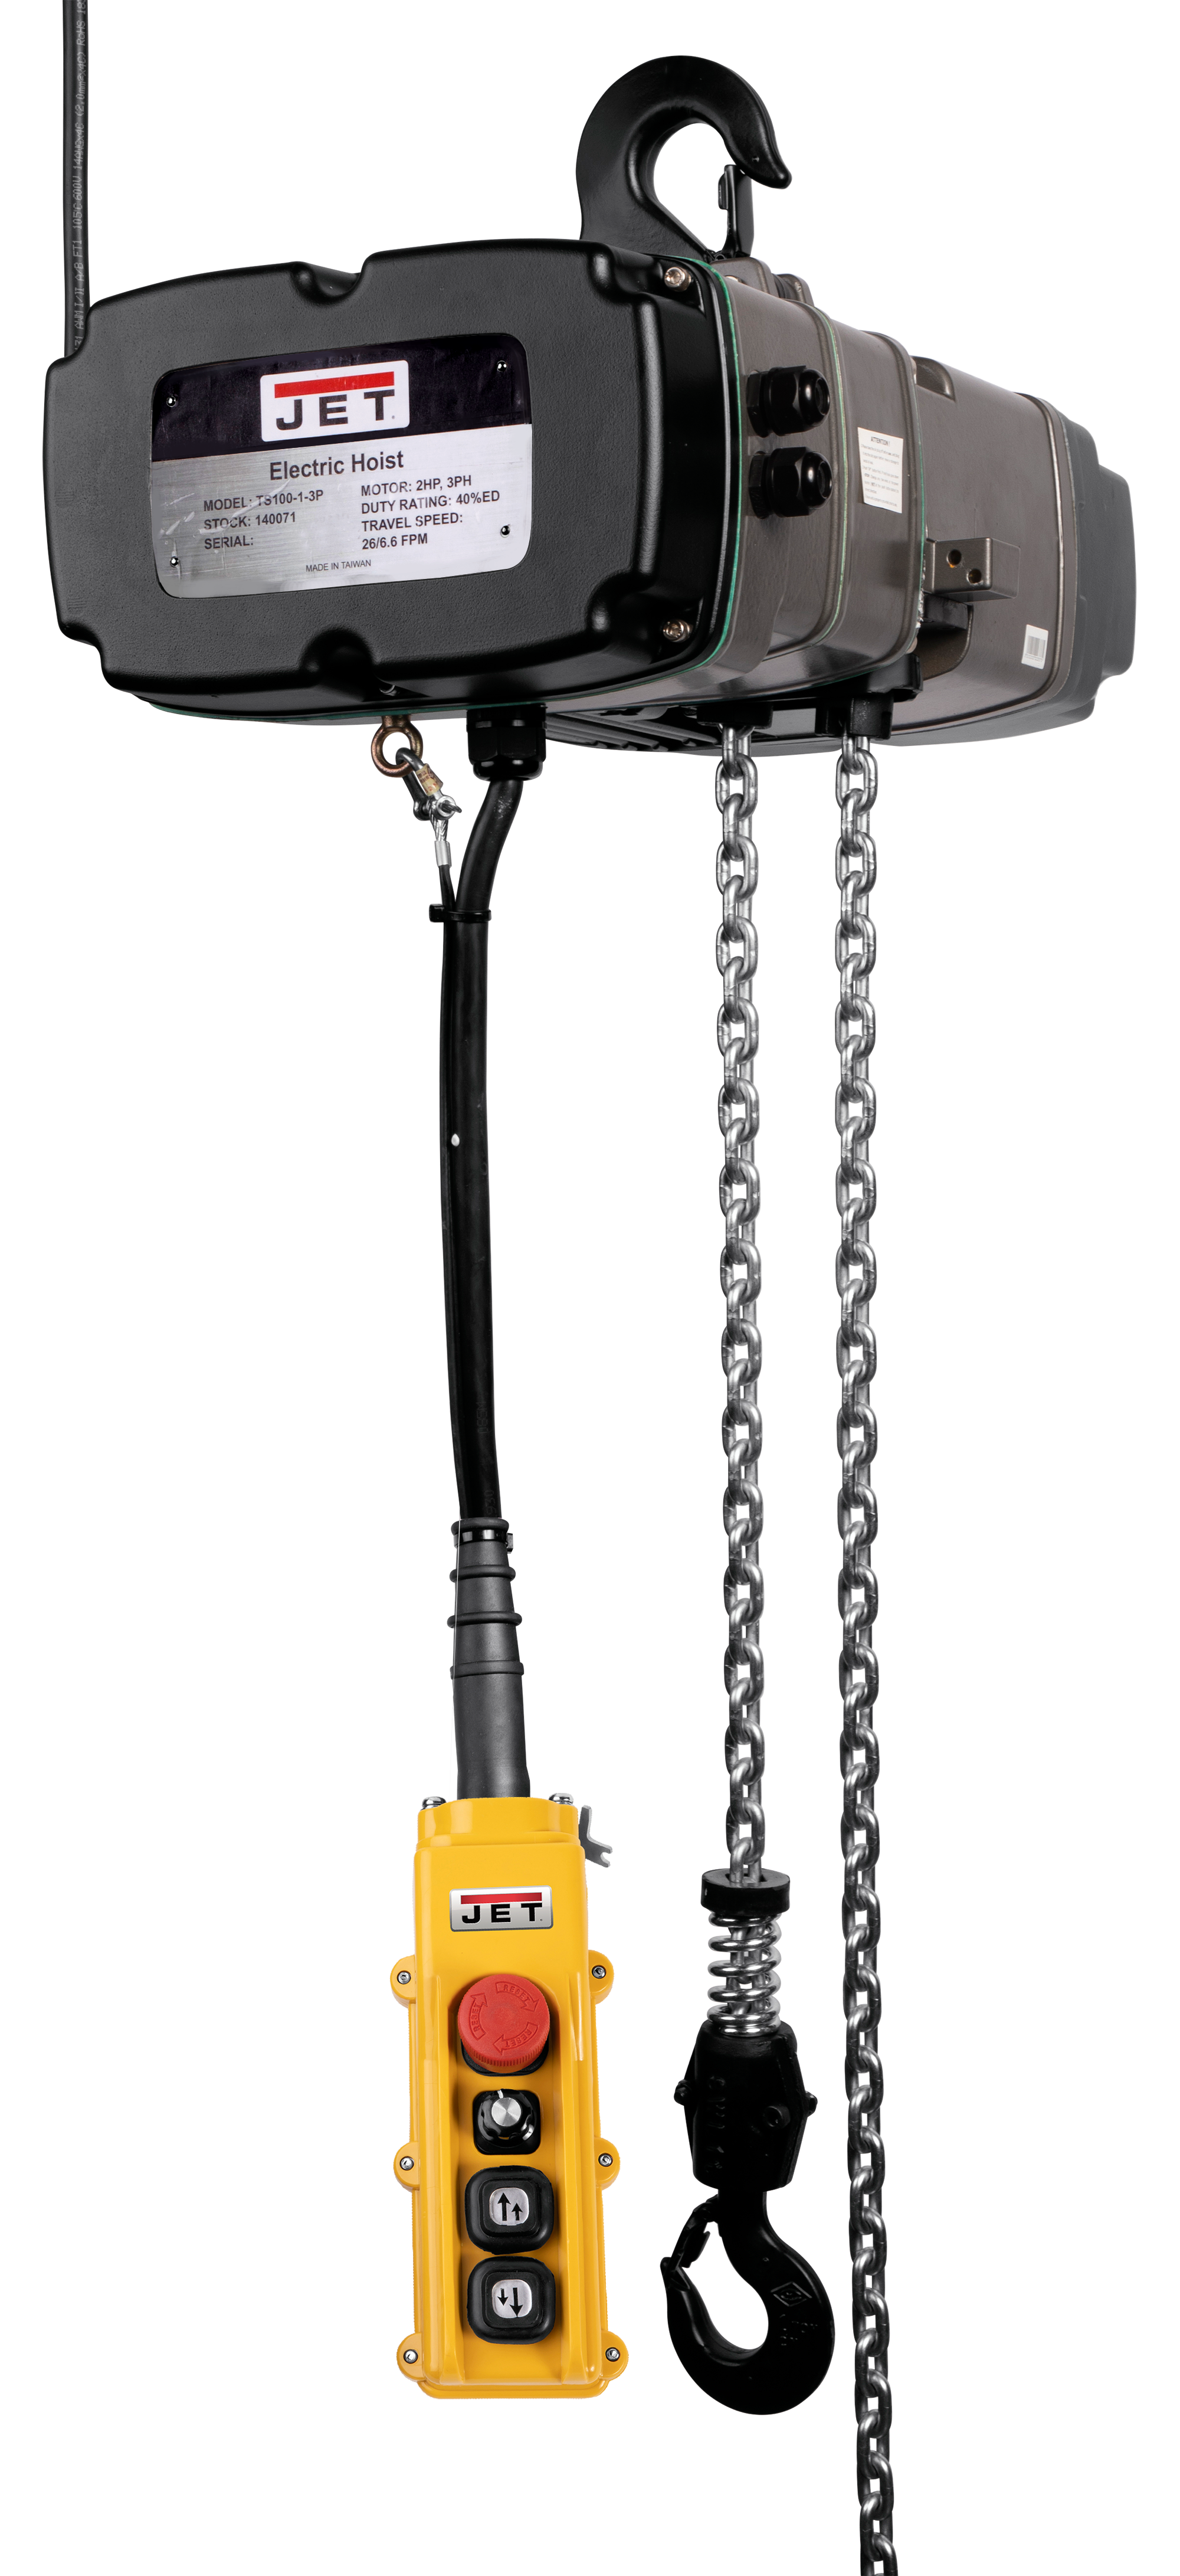 TS100-460-020, 1-Ton Two Speed Electric Chain Hoist 3-Phase 20' Lift